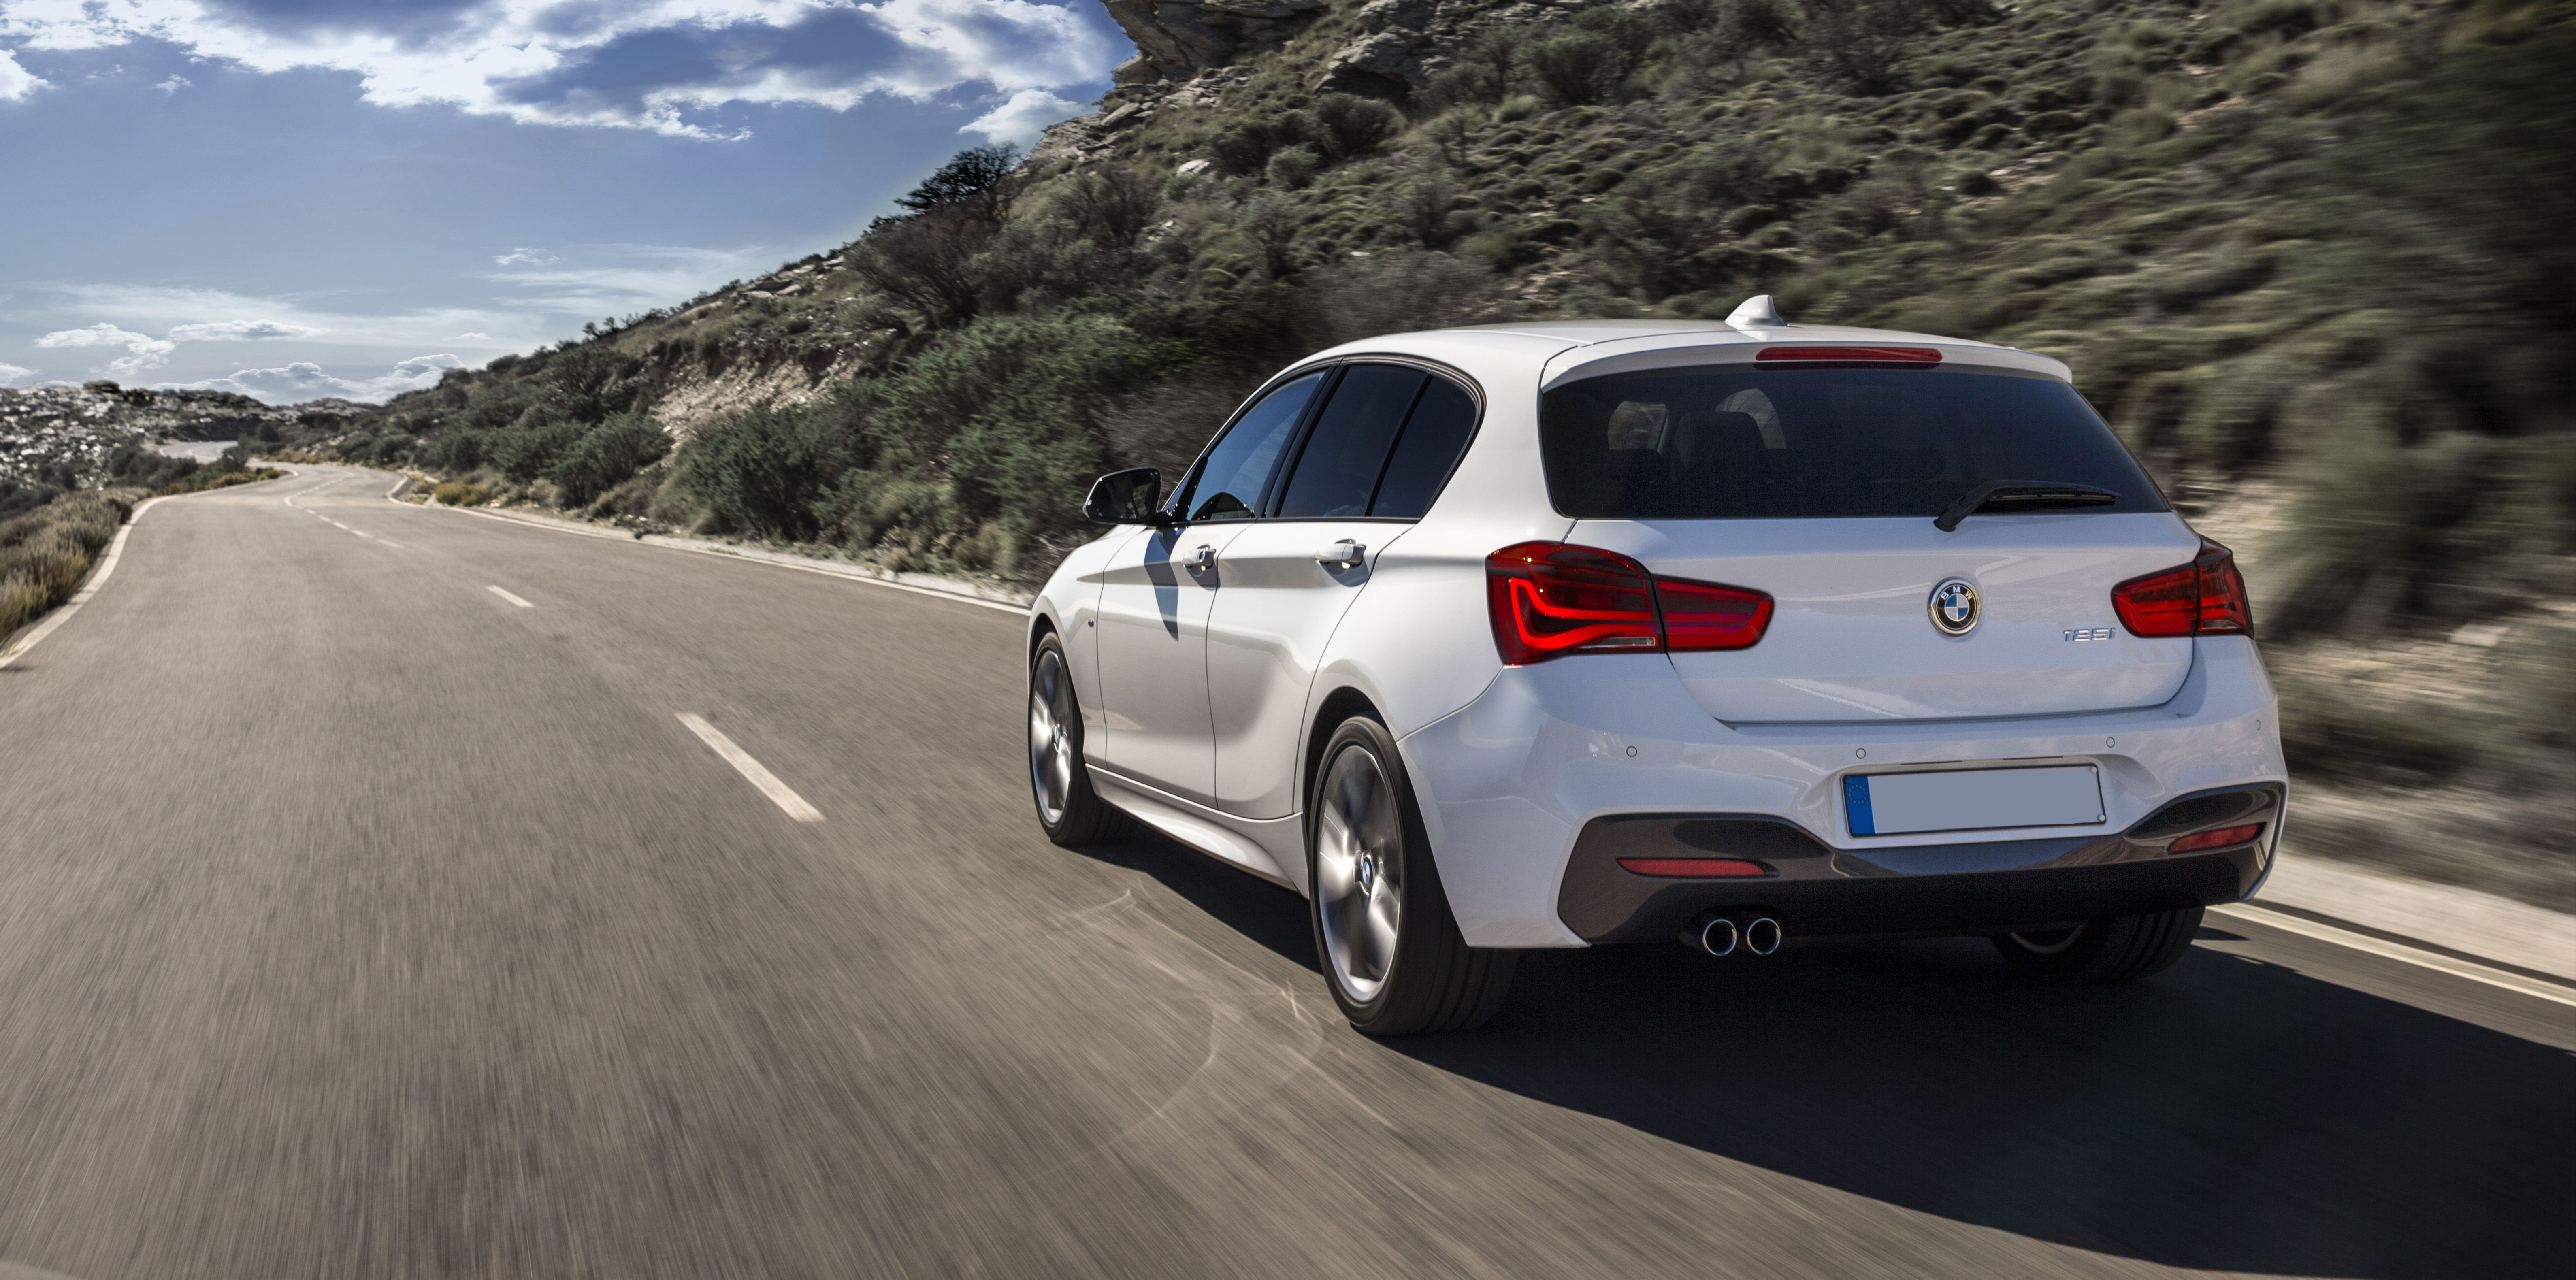 Bmw 1 Series Sizes And Dimensions Guide Carwow